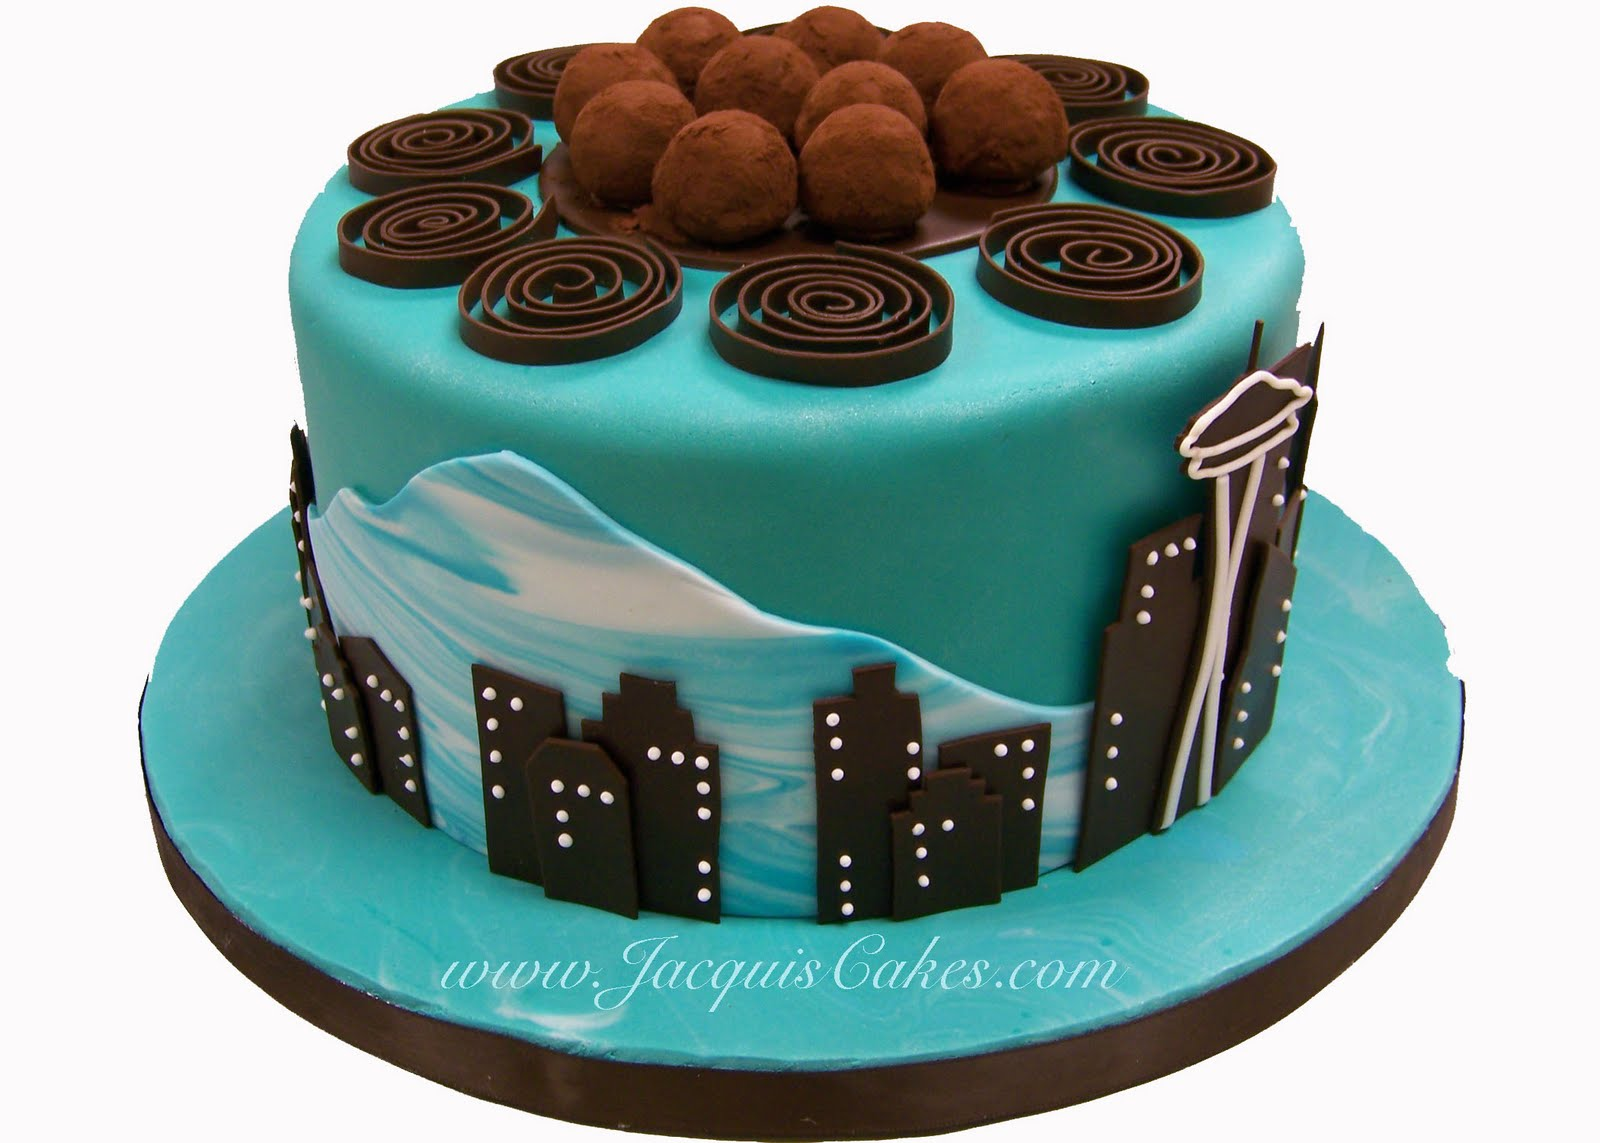 THE BLOG Cake Of The Day